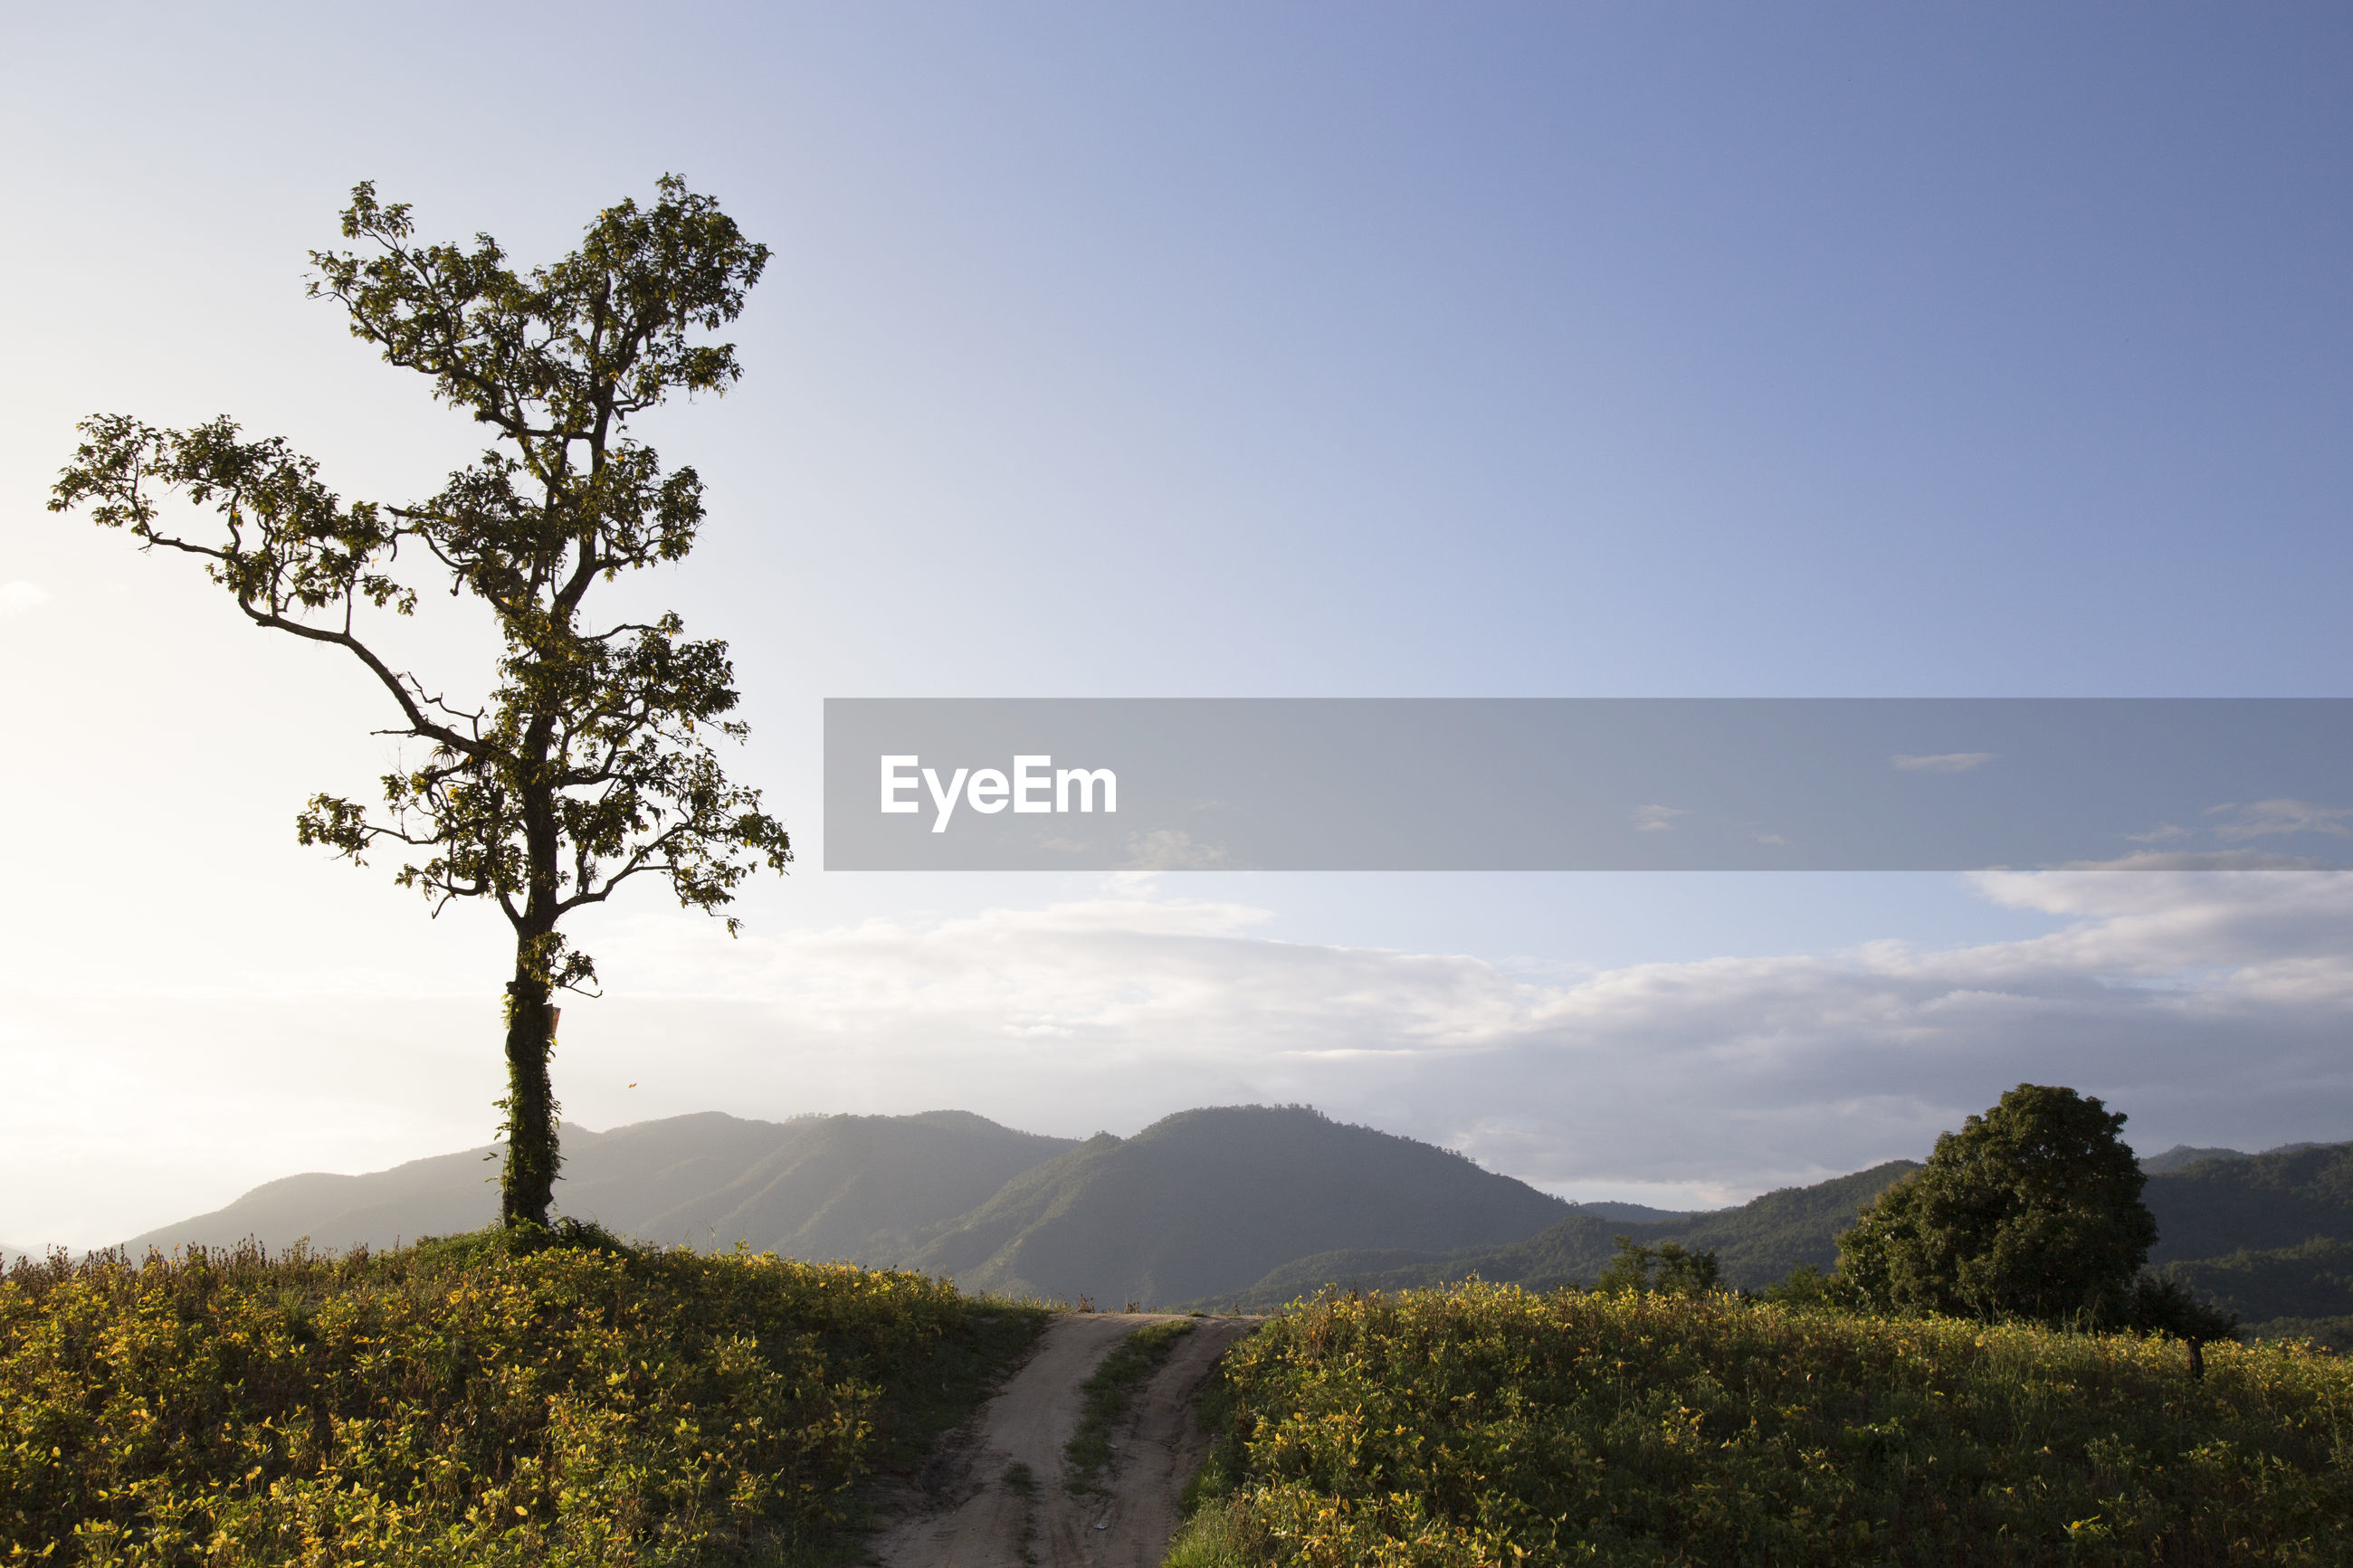 SCENIC VIEW OF TREES ON FIELD BY MOUNTAIN AGAINST SKY